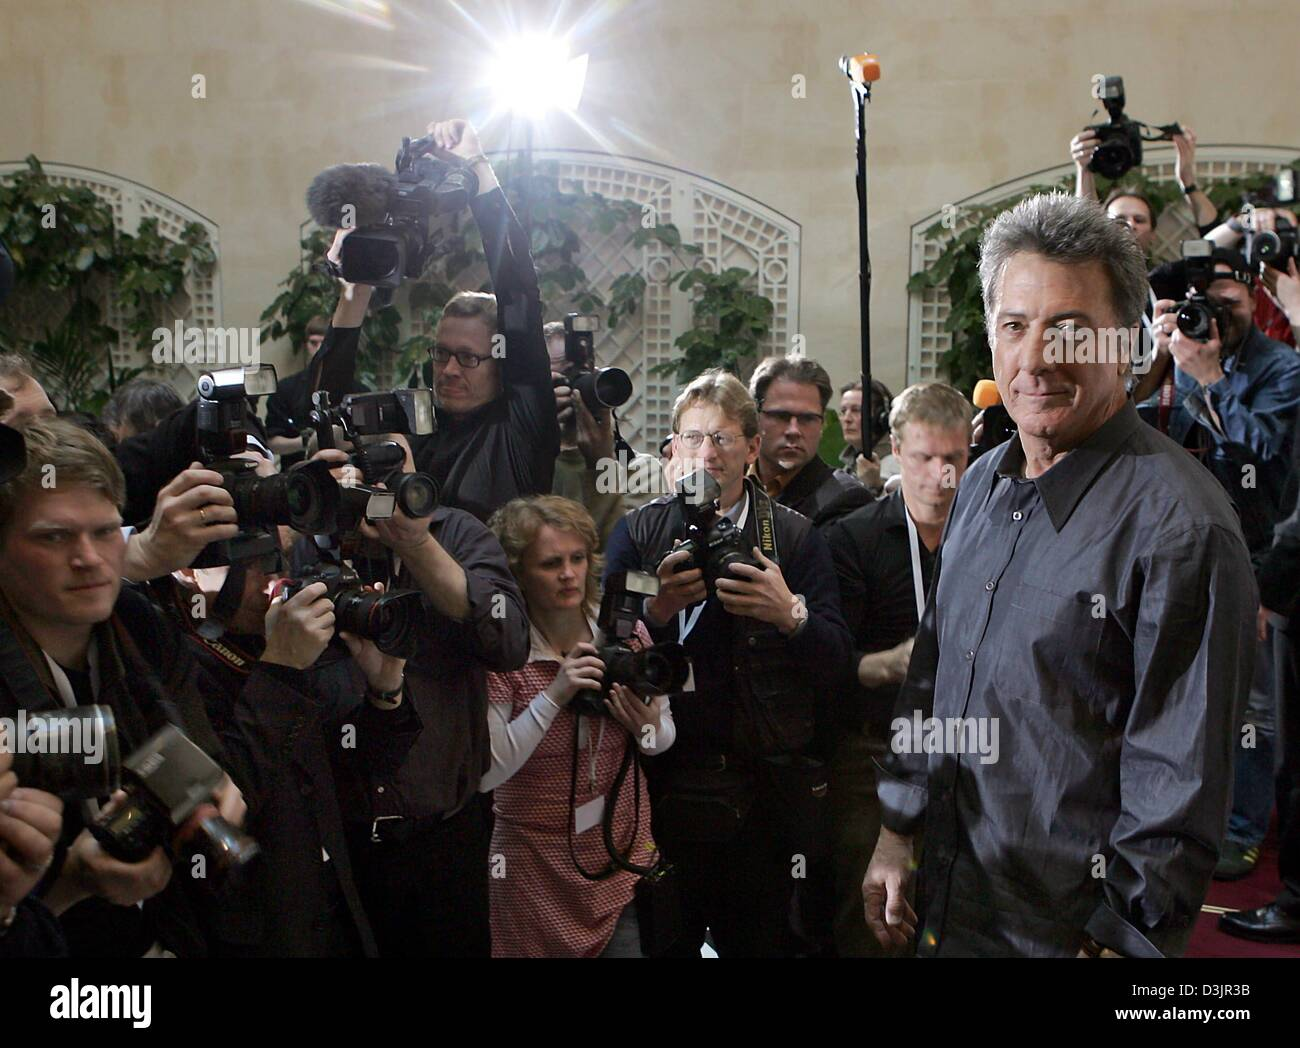 (dpa) - US actor Dustin Hoffman is surrounded by photographers and camera teams during a photo call for the upcoming - Stock Image